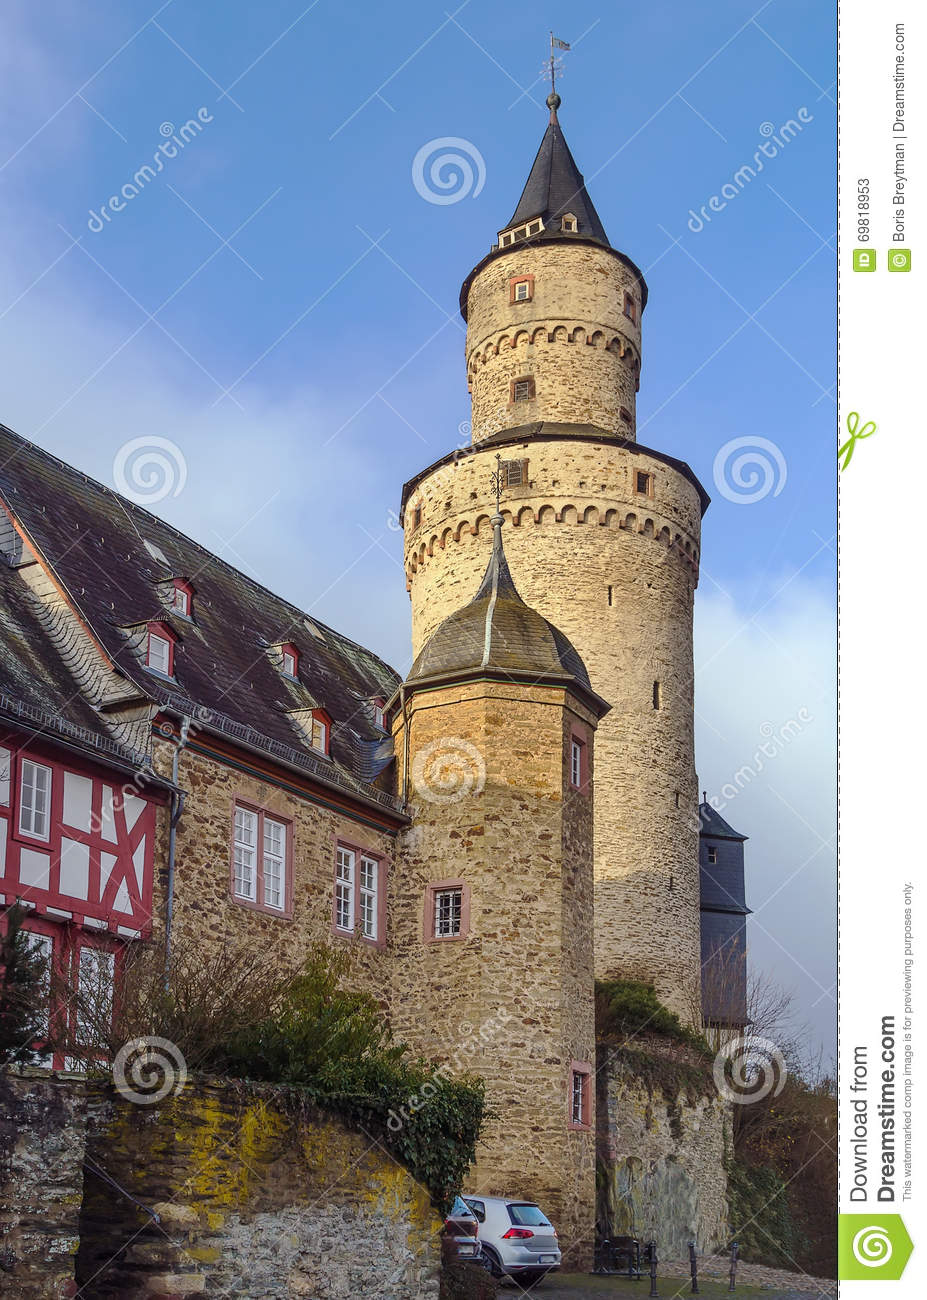 The Hexenturm (Witches' Tower), Idstein, Germany Stock Photo.